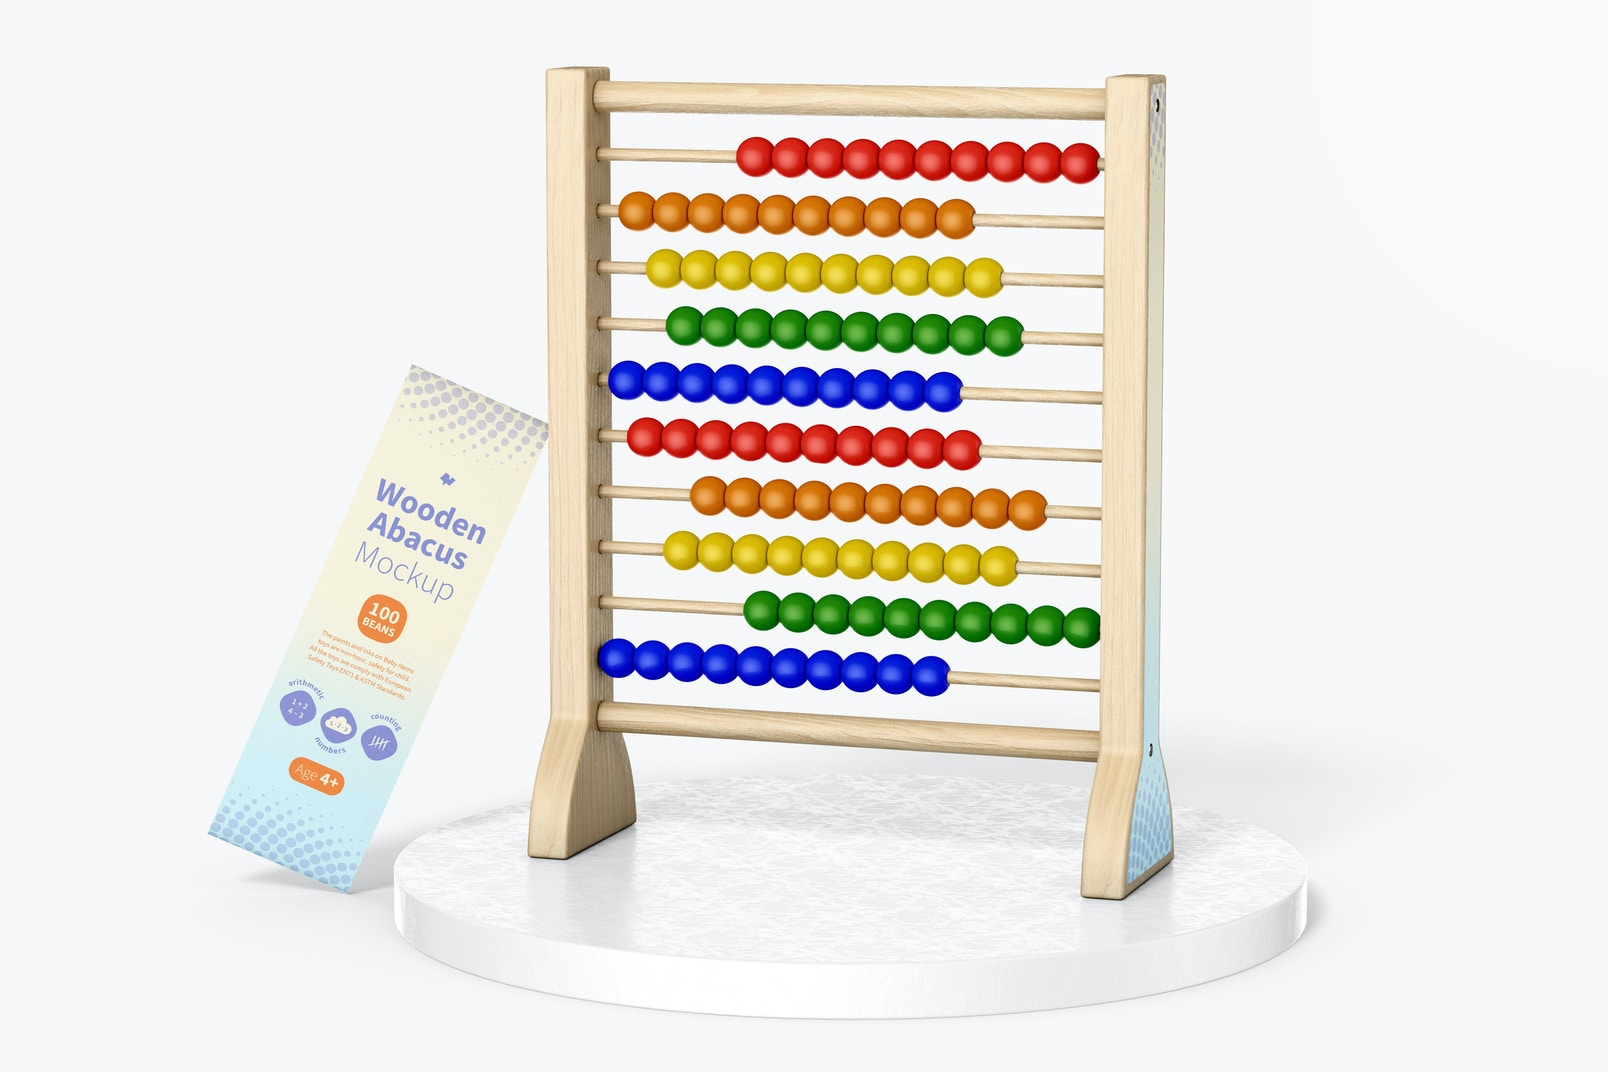 Wooden Abacus Mockup, on Surface